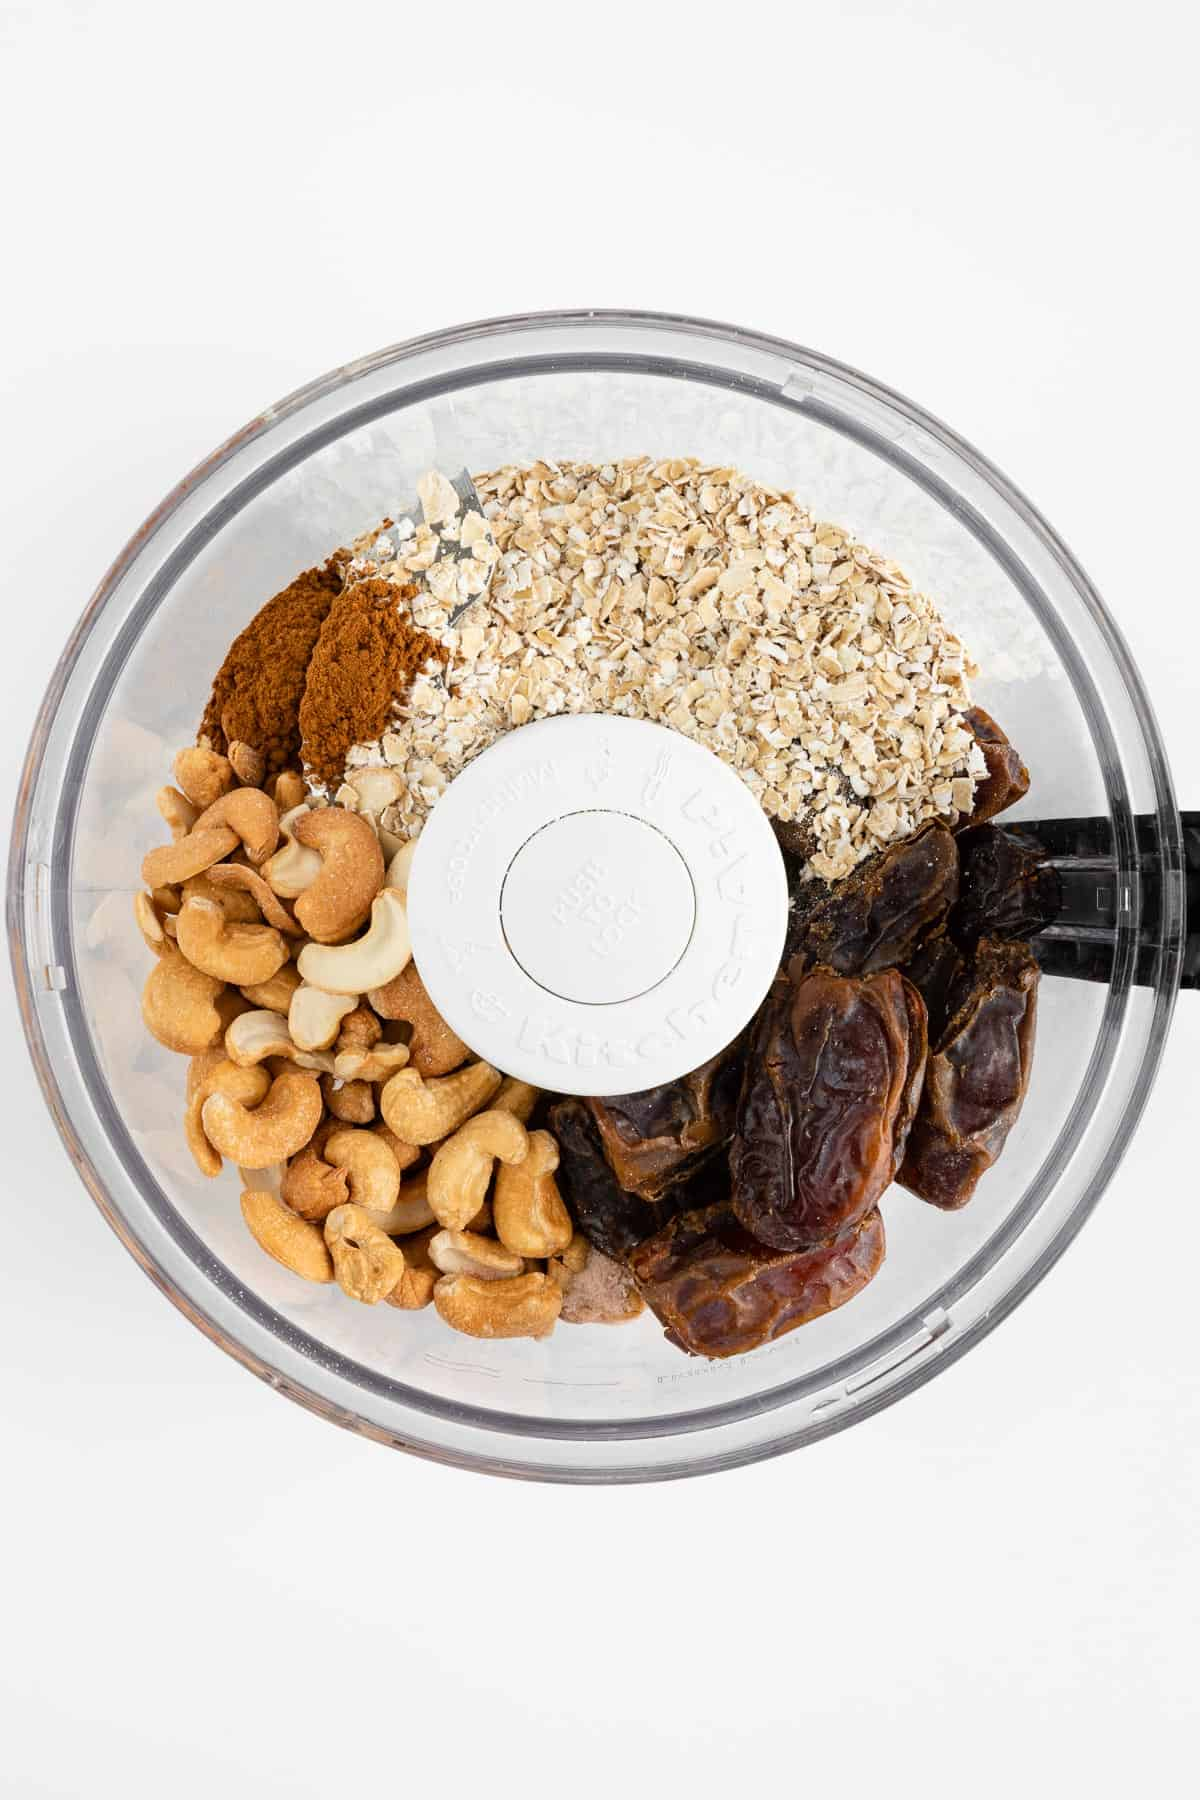 cashews, dates, oats, cinnamon, and vanilla extract inside the bowl of a food processor